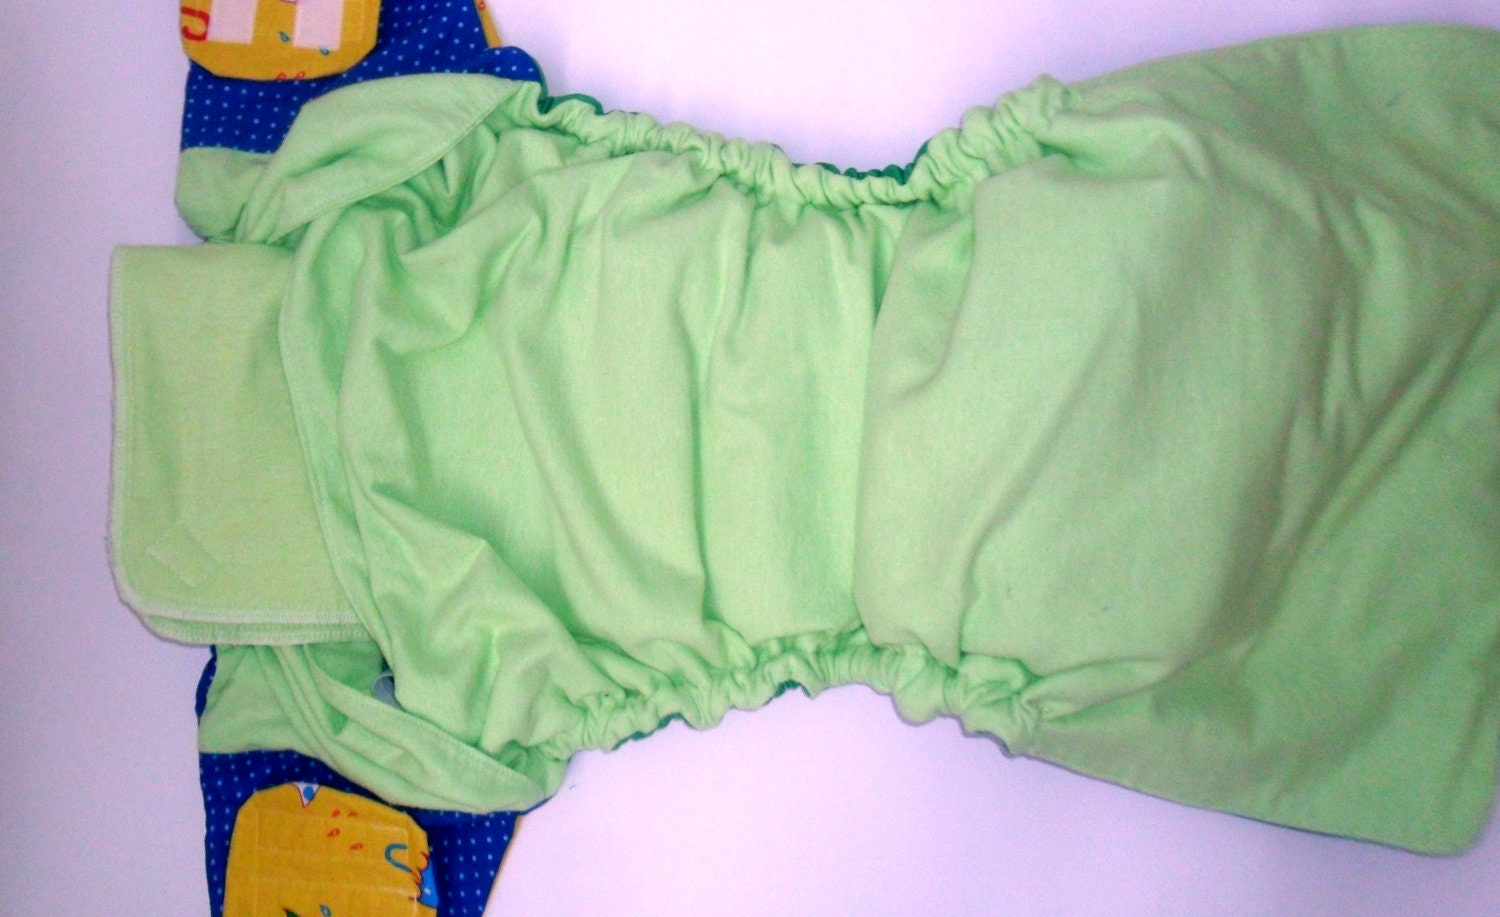 Adult cloth diaper, adult cloth nappy - pocket style